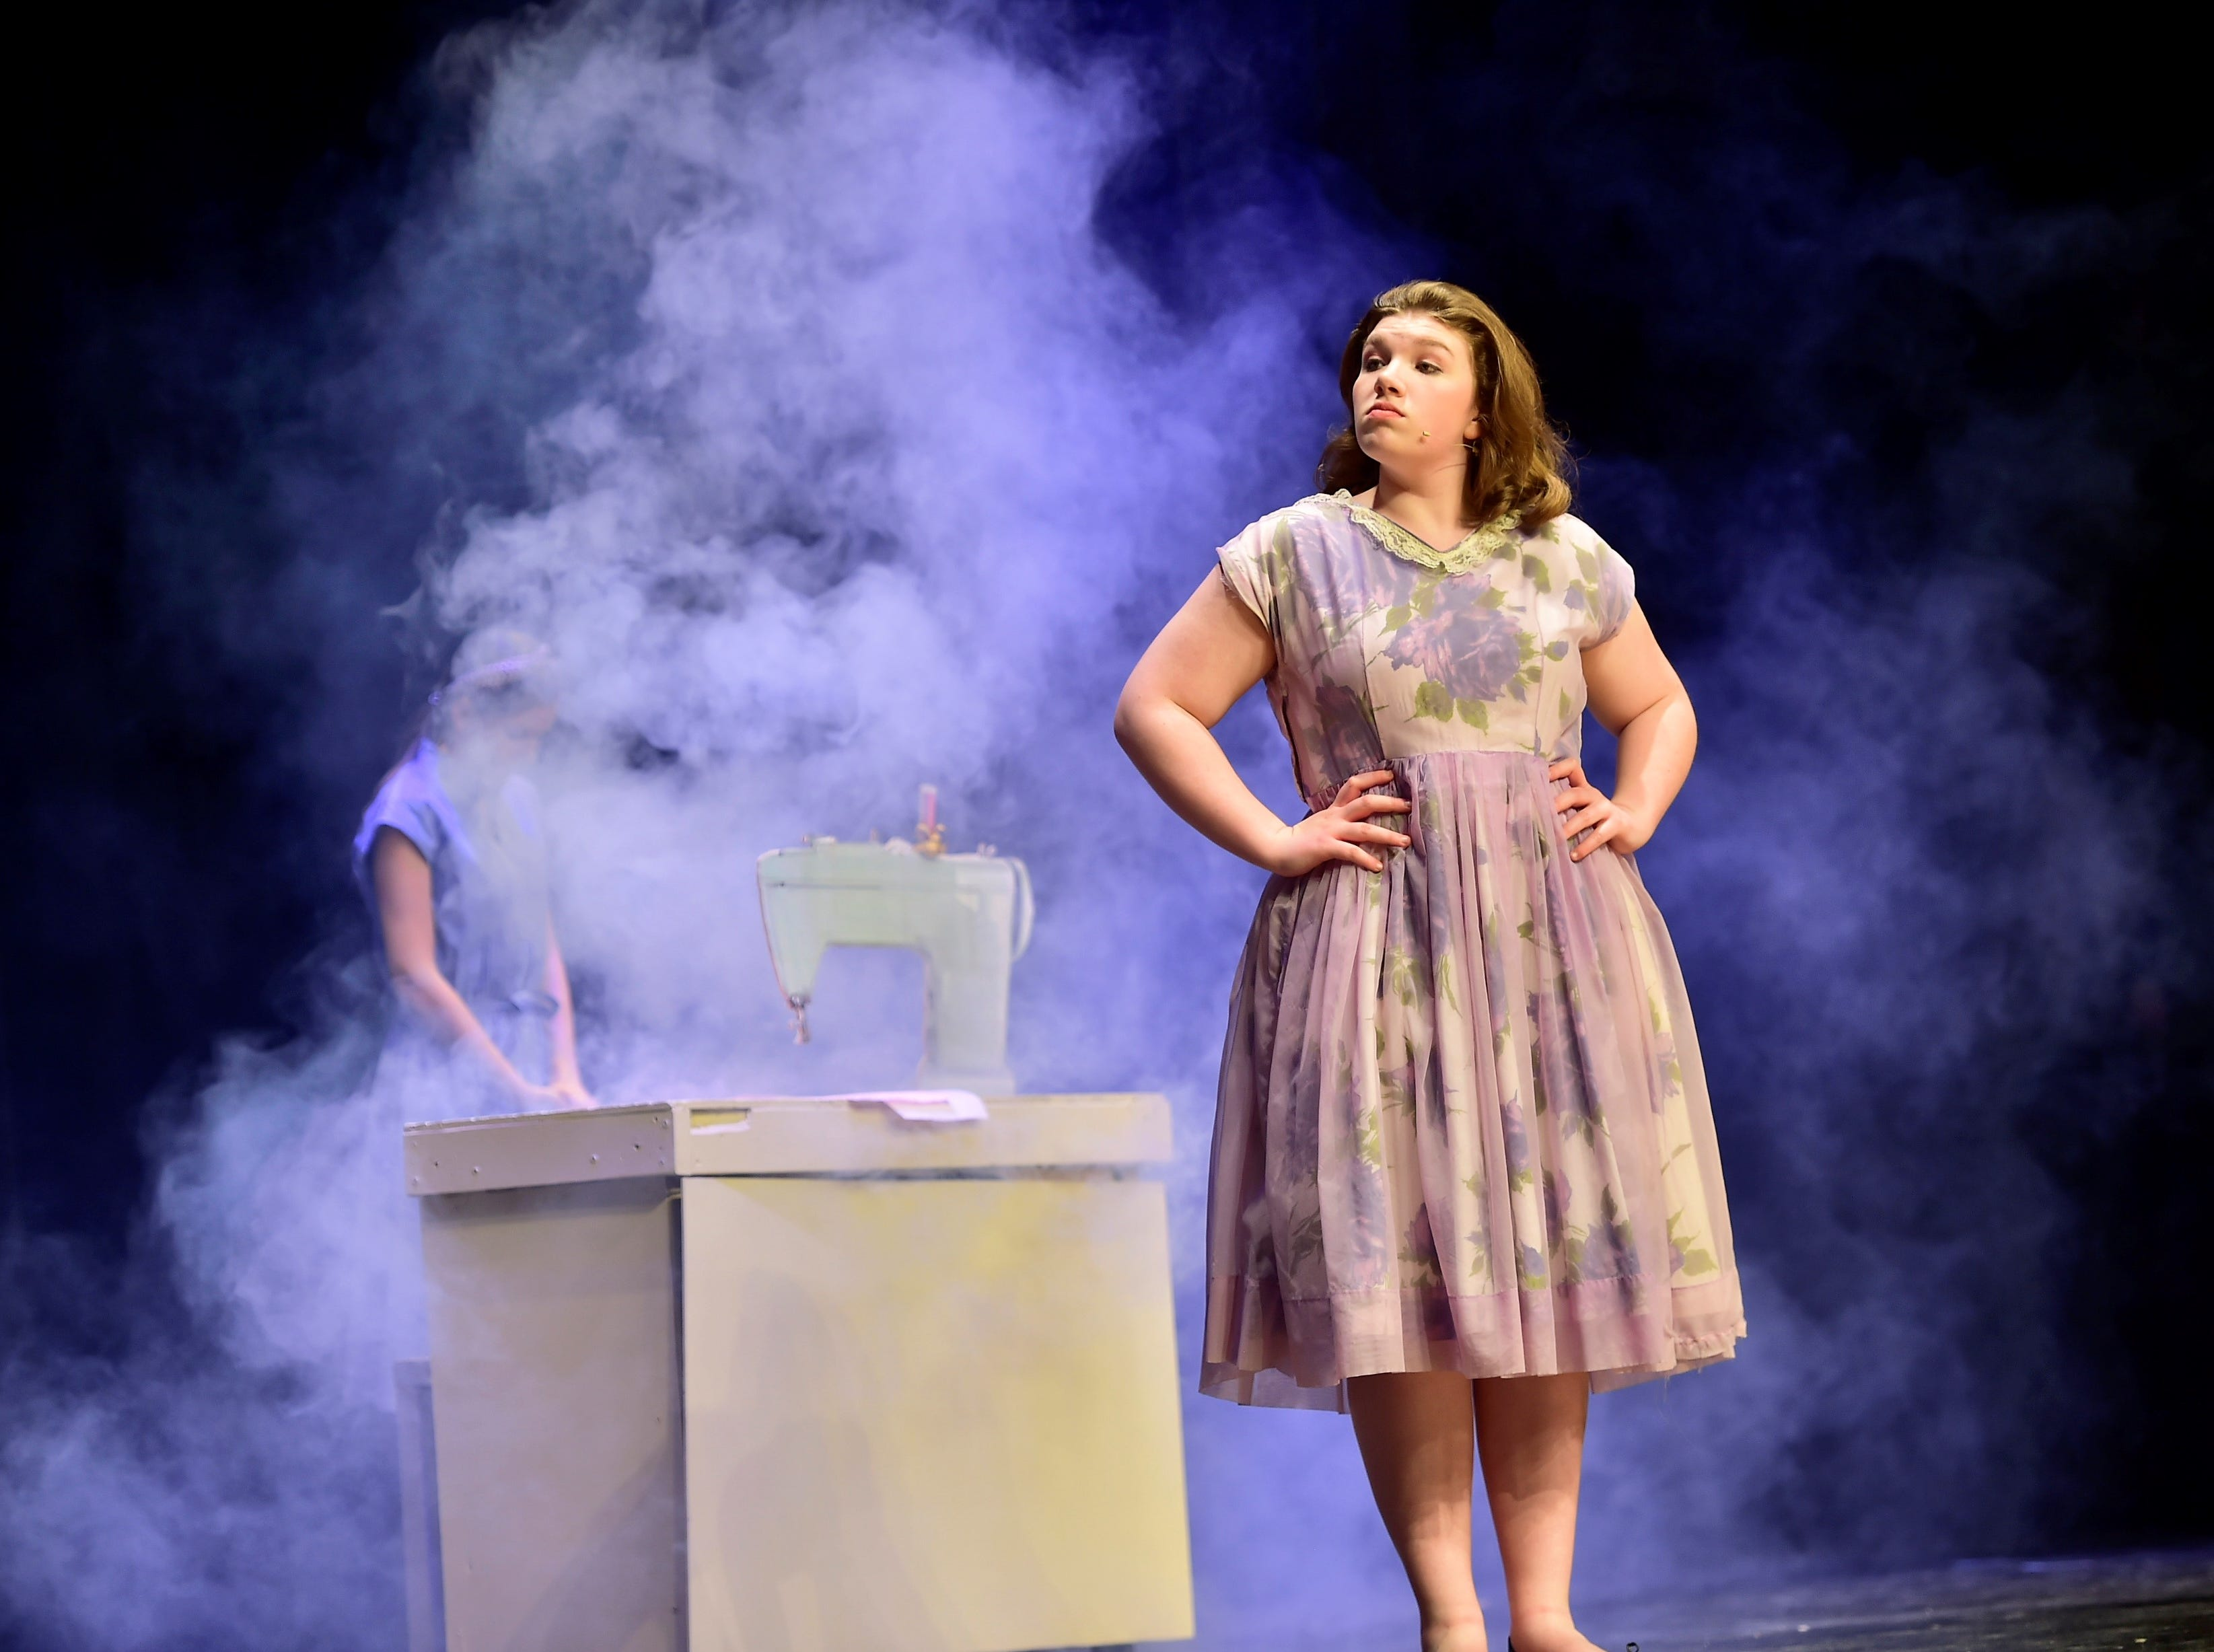 """Taylor Stevens (Babe) stares down her supervisor after a sewing-machine mishap, while rehearsing a scene from """"The Pajama Game,"""" on Sunday, March 10, 2019, at Waynesboro Area Senior High School. The musical, based on the 1953 novel, """"7 1/2 Cents"""" by Richard Bissell, tells the story of a pajama factory where workers are fighting for a raise of 7 1/2 cents. Showtimes for Waynesboro Area School District's All-School Production of """"The Pajama Game"""" are 7 p.m. Friday and Saturday, March 15 and 16, and 2 p.m. Sunday, March 17 in the high school auditorium. For choose-your-seat tickets, $10 for adults and $6 for children under 12, go to https://washsmusic.ticketleap.com/the-pajama-game/. General admission tickets will also be sold at the door."""